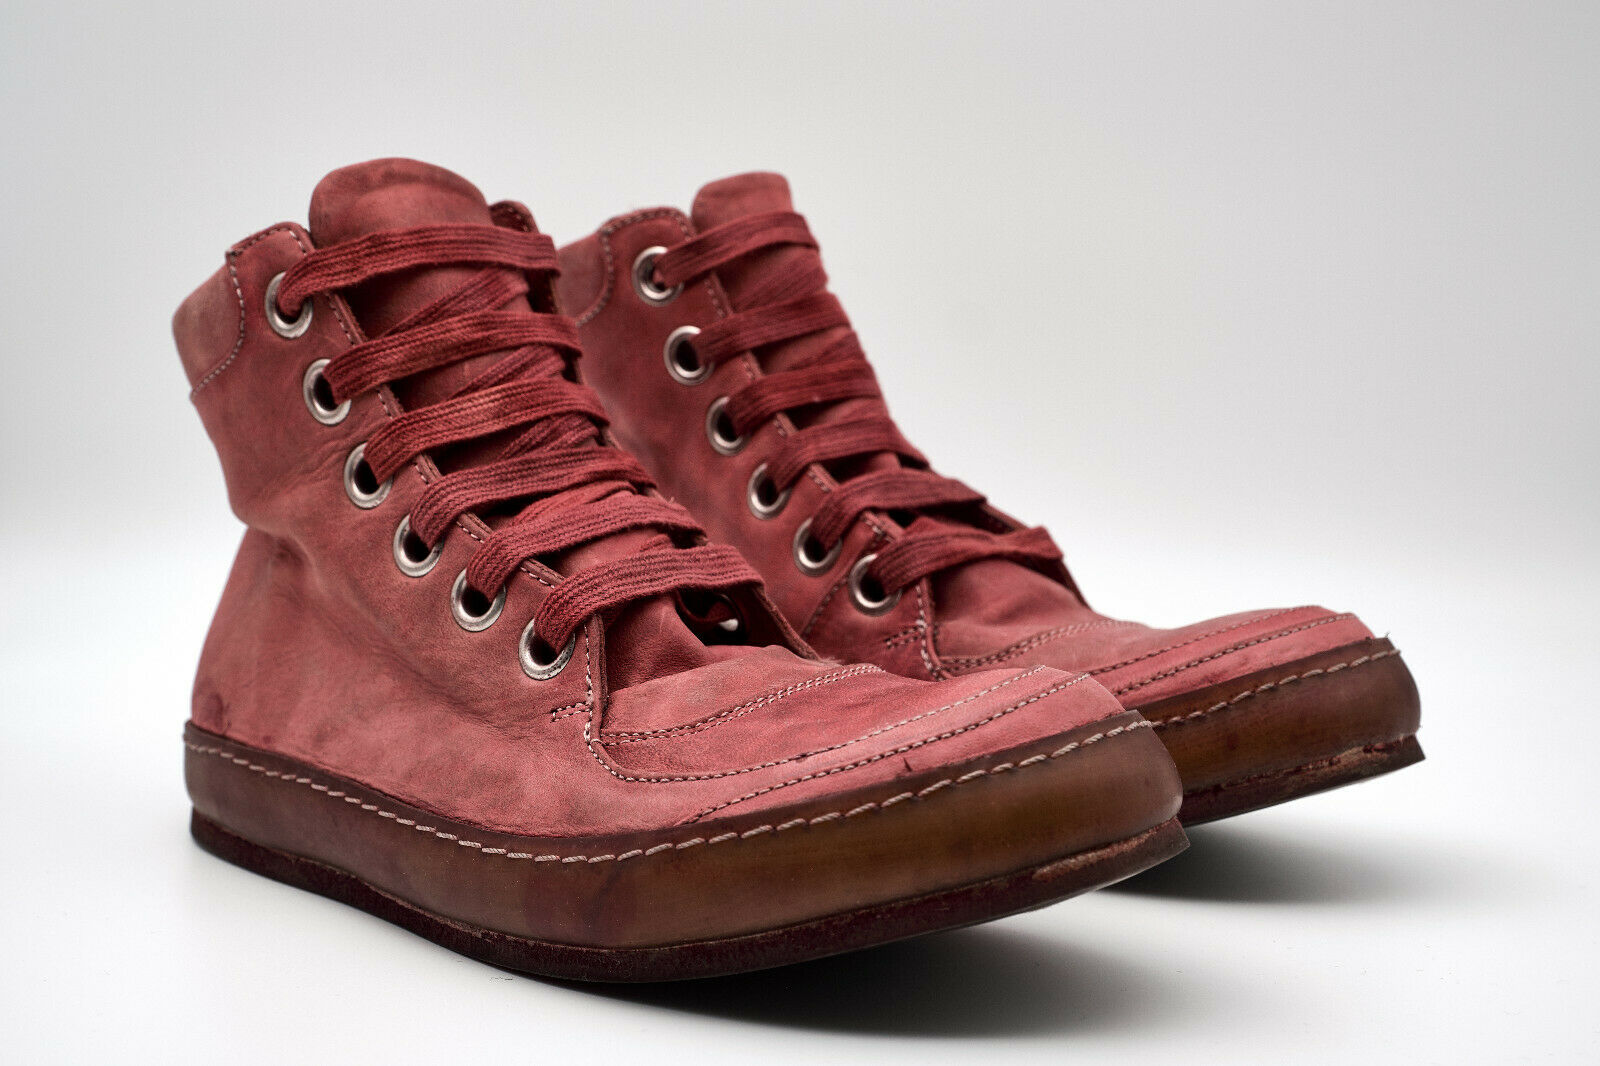 A1923 A DICIANNOVEVENTITRE WOMEN'S WASHED HORSE LEATHER RED SNEAKERS 36,37,1815